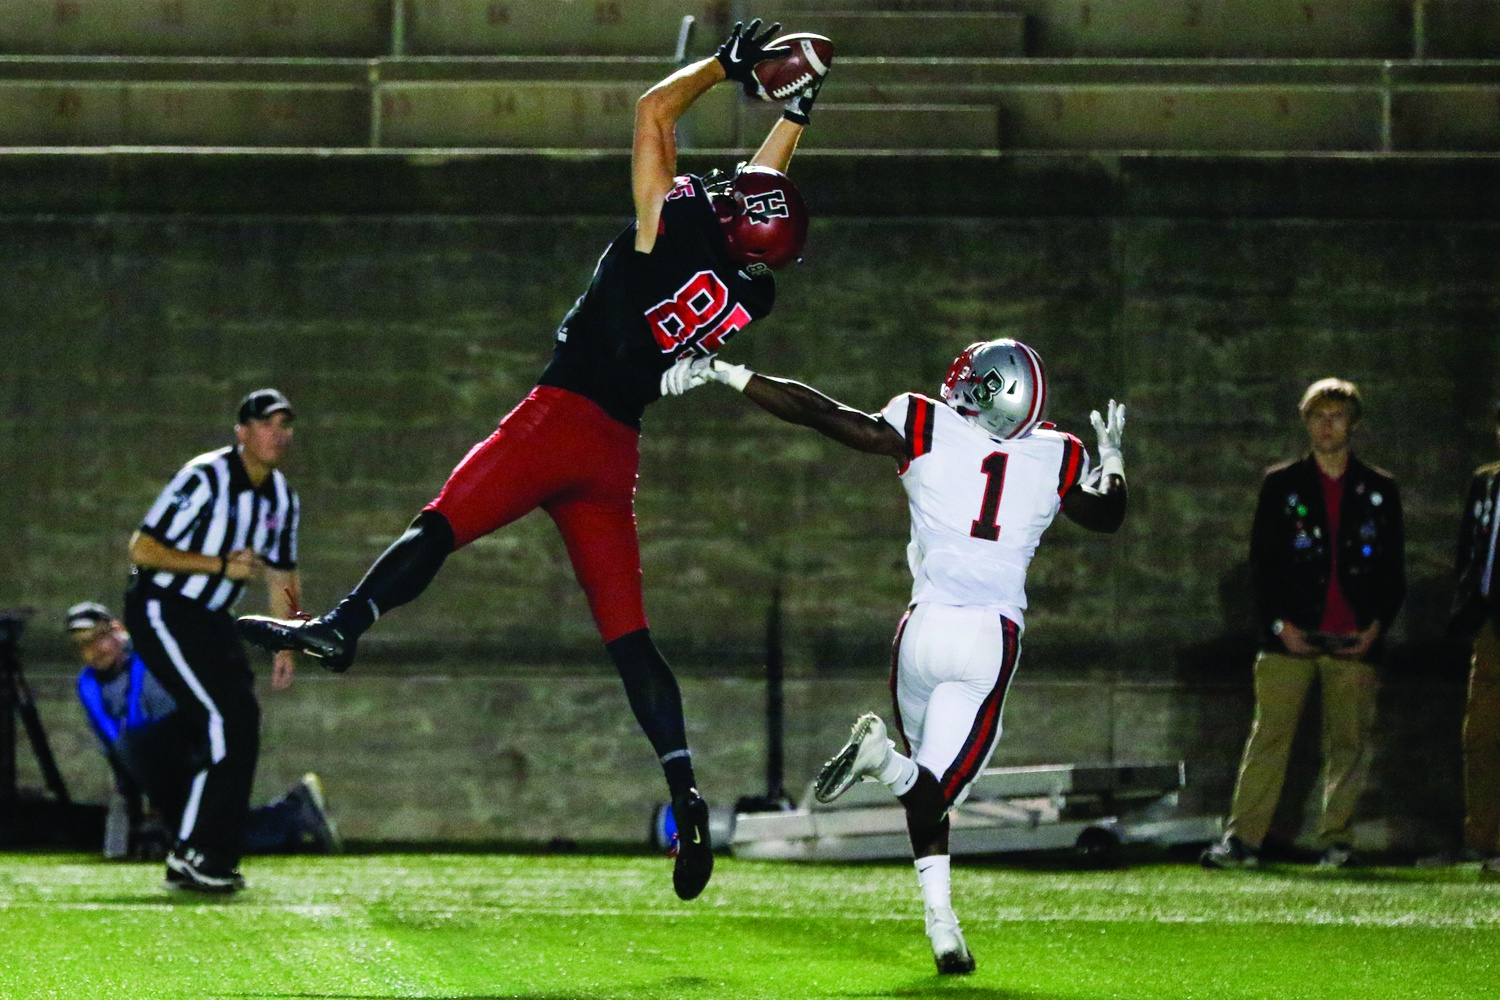 Junior tight end Adam West goes up for a leaping grab in the end zone during last weekend's home game against Brown.